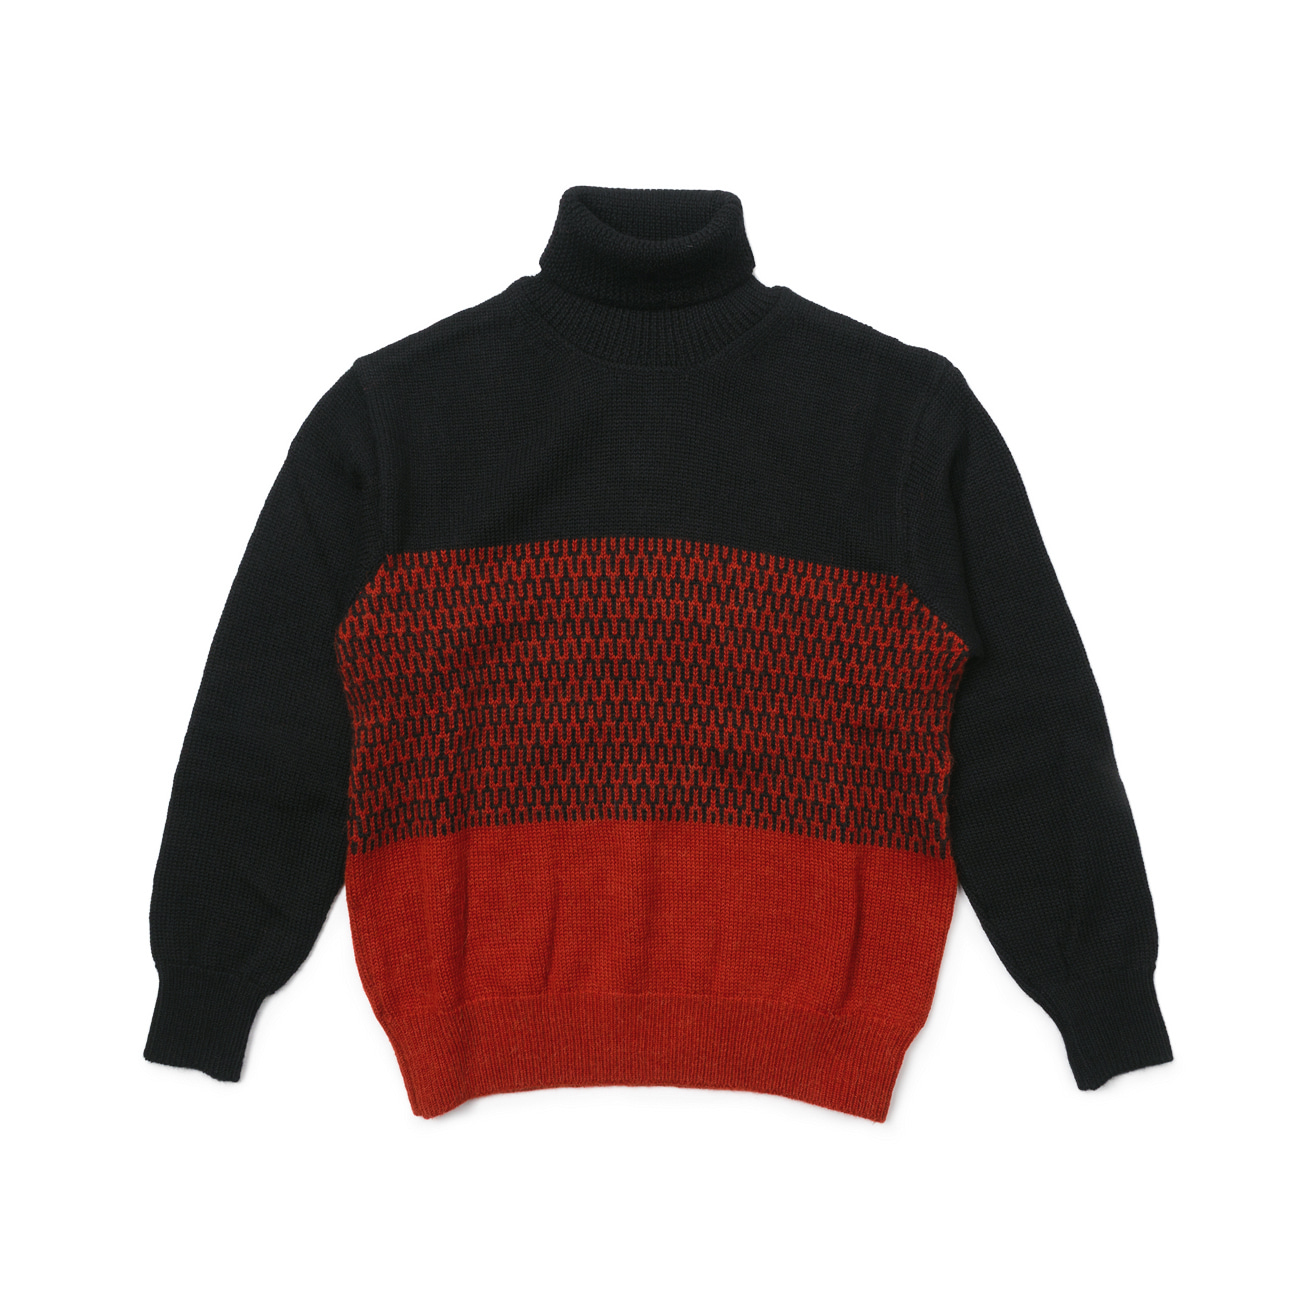 Jacquard Turtleneck Knit